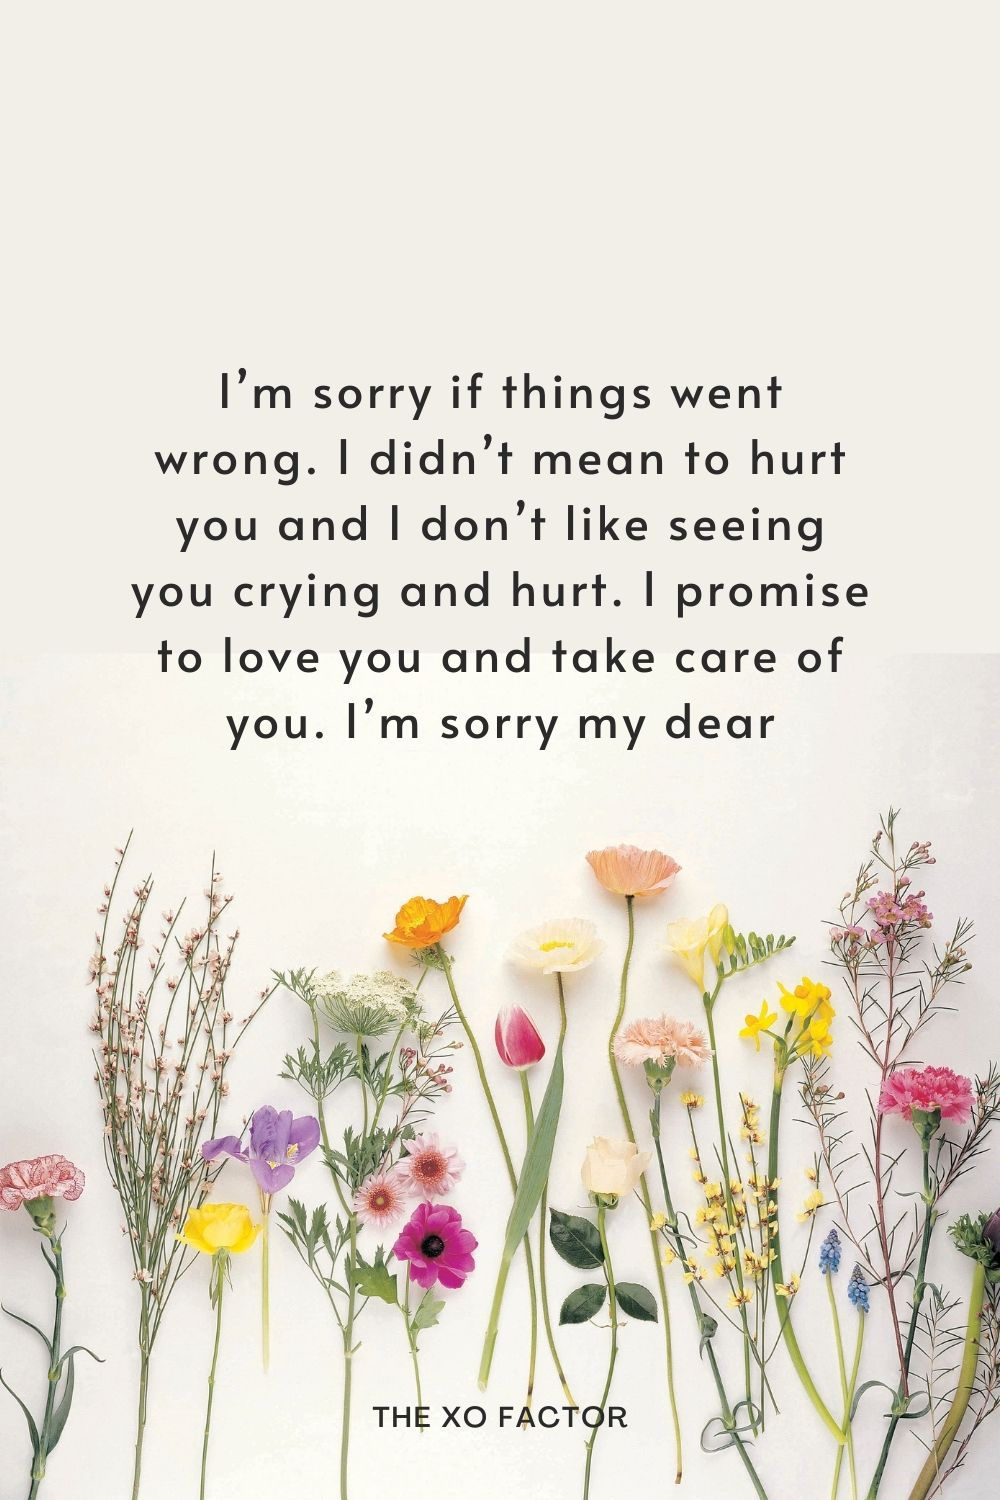 I'm sorry if things went wrong. I didn't mean to hurt you and I don't like seeing you crying and hurt. I promise to love you and take care of you. I'm sorry my dear!